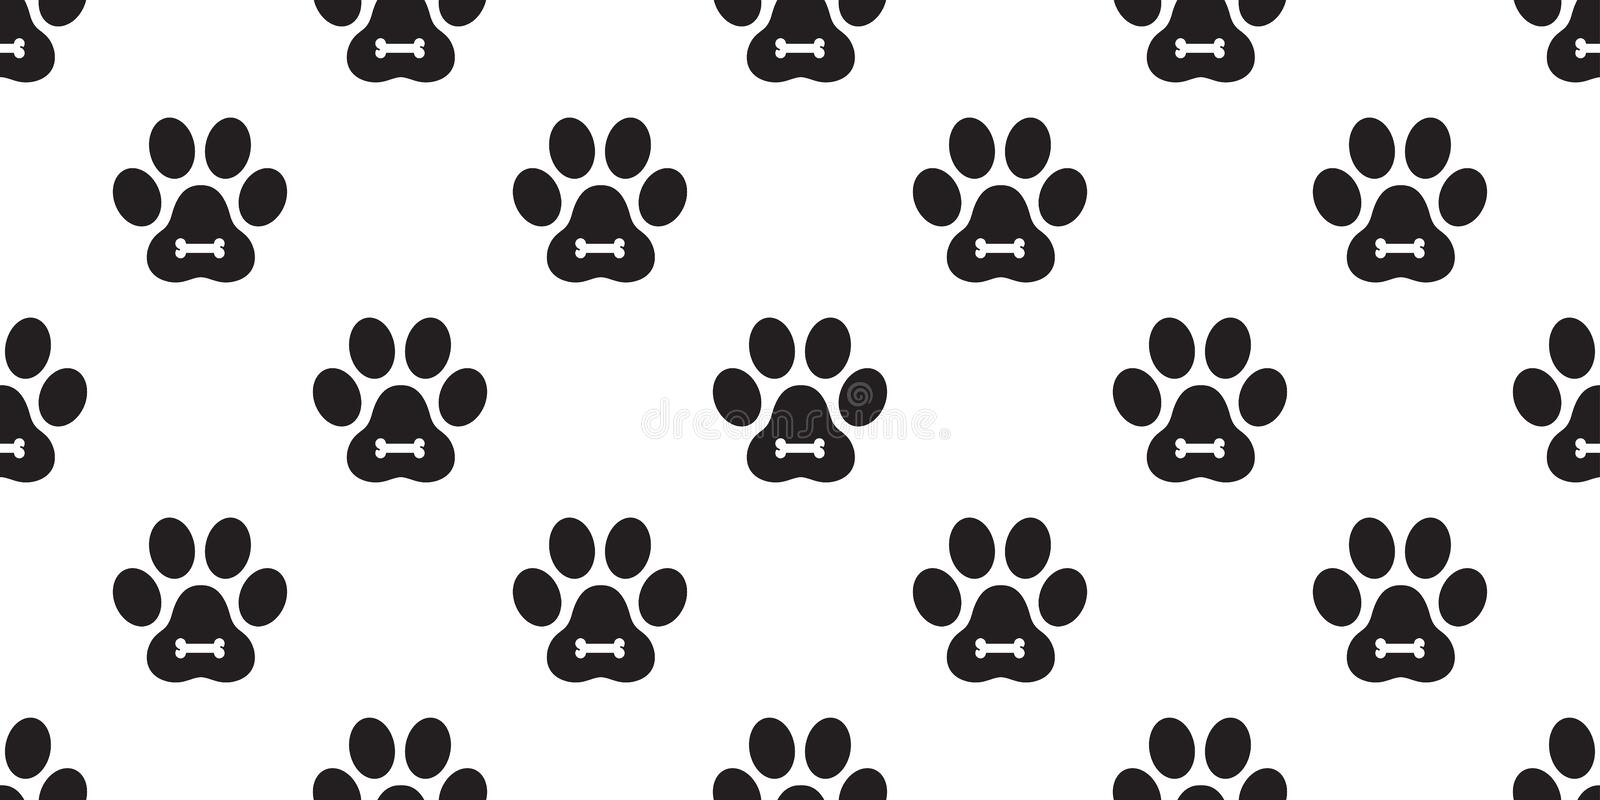 Dog Paw Seamless Pattern vector Cat Paw puppy bone foot print kitten scarf isolated repeat wallpaper tile background illustration. Dog Paw Seamless Pattern stock illustration